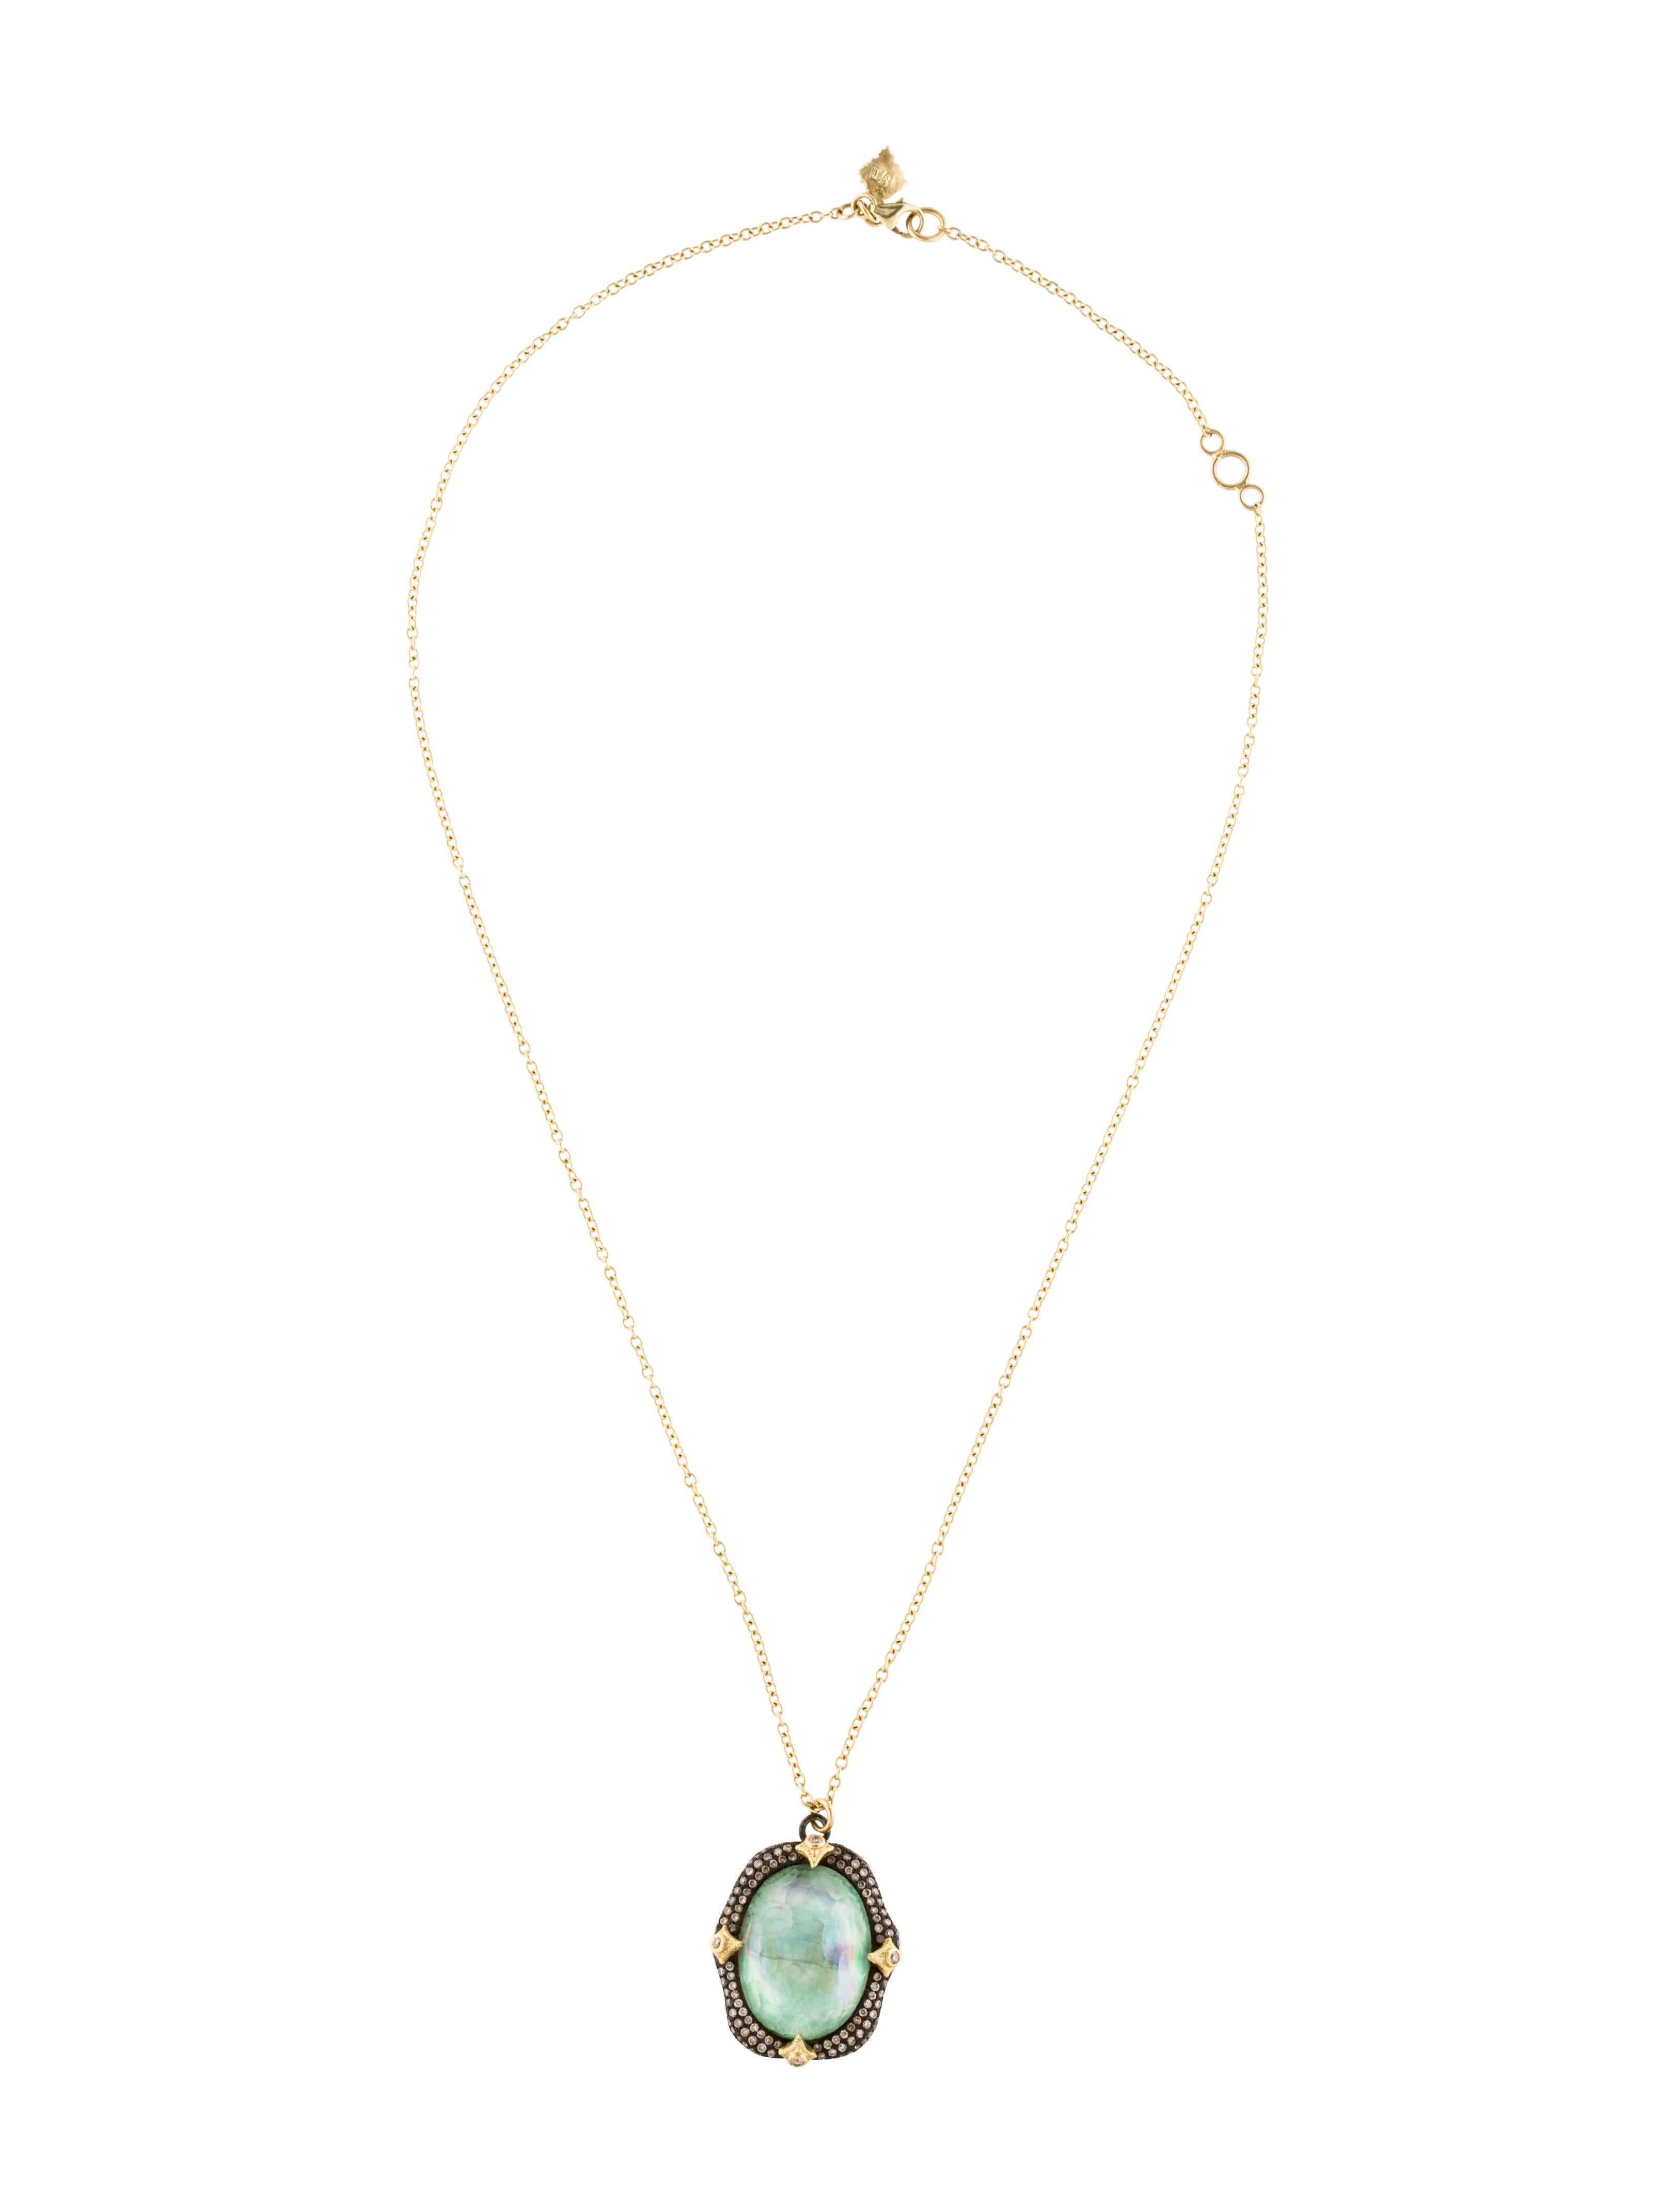 Armenta Rose Mother-of-Pearl & Quarts Pendant Necklace with Diamonds yiHu93